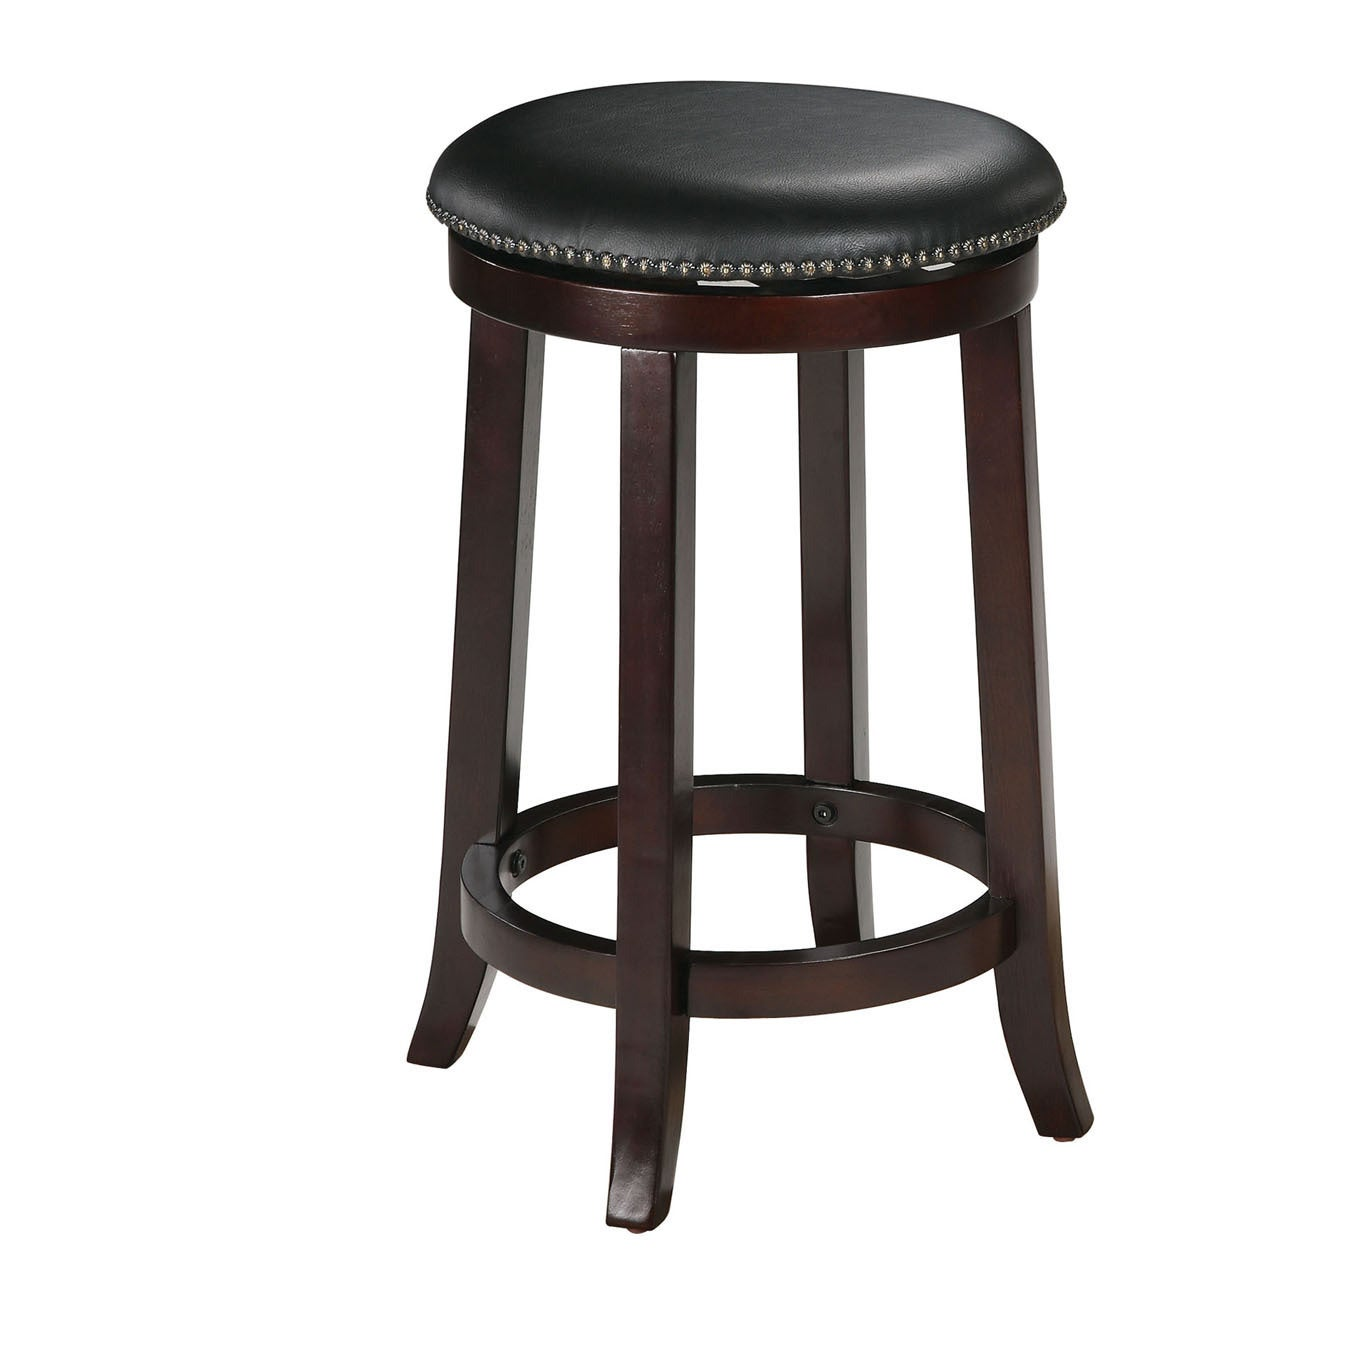 Chelsea Faux Leather And Wood Espresso Finish Swivel Bar Stool Set Of 2 Free Shipping Today 19409536